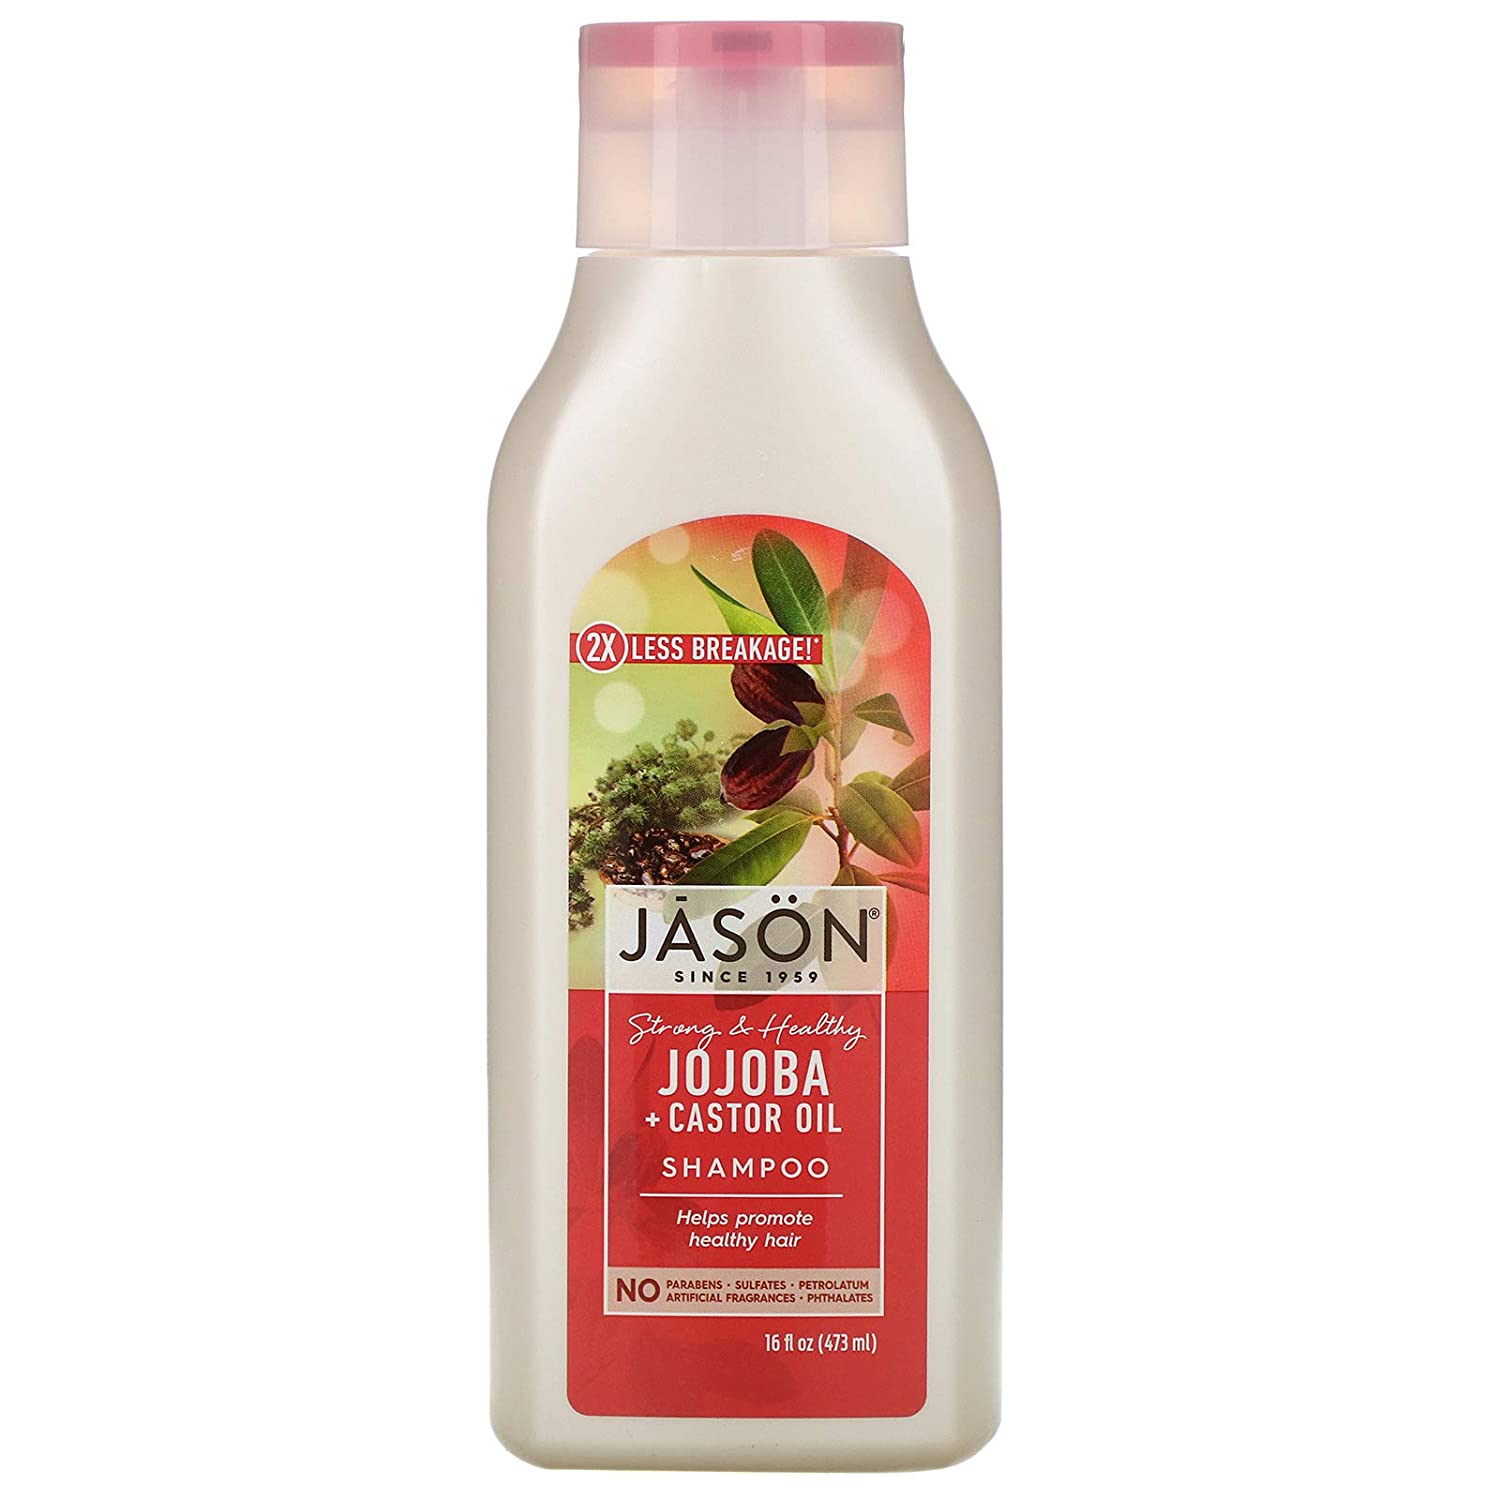 JASON Long 70% OFF Outlet Strong Jojoba Shampoo for All stores are sold O Hair Healthy Growth 16